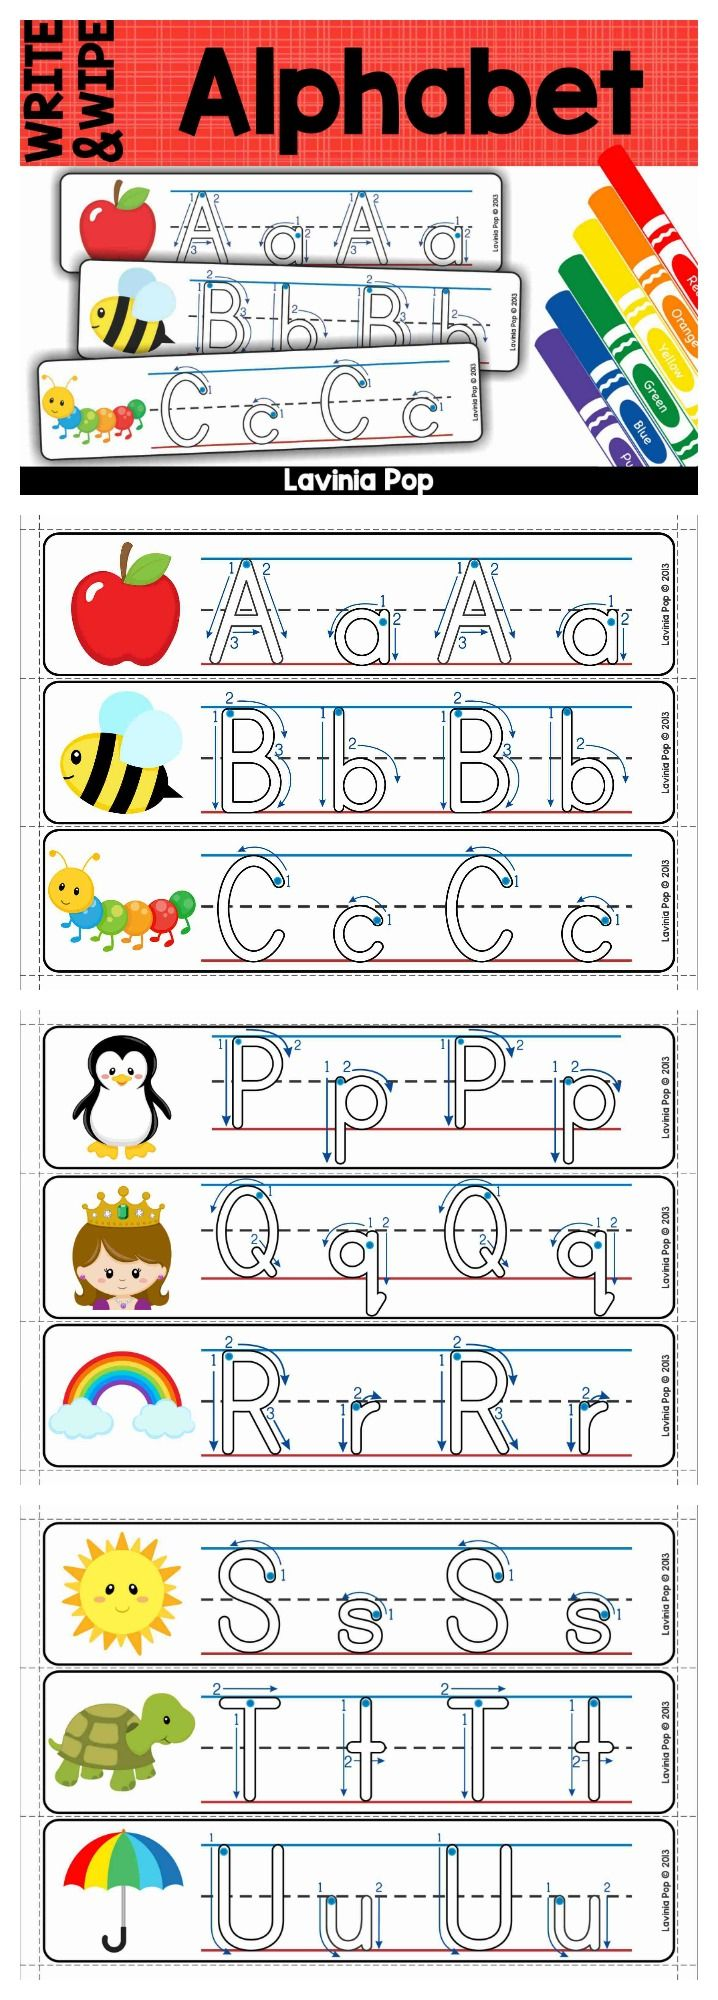 Write and Wipe Alphabet cards with directional arrows to show correct letter formation.